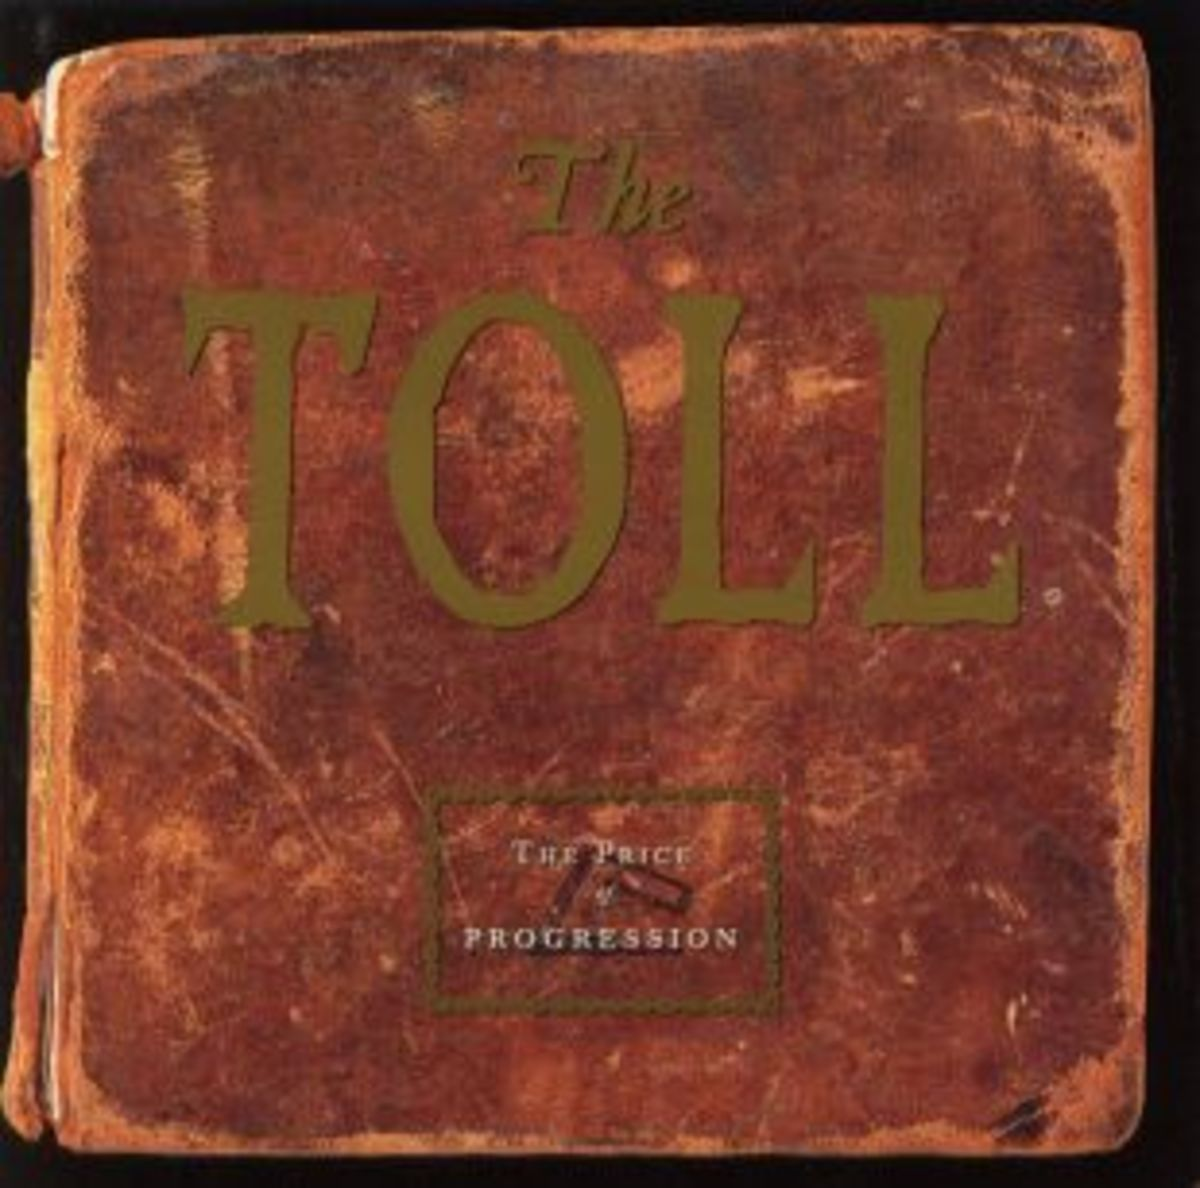 10 Albums You Need To Hear #5: The Price of Progression by The Toll